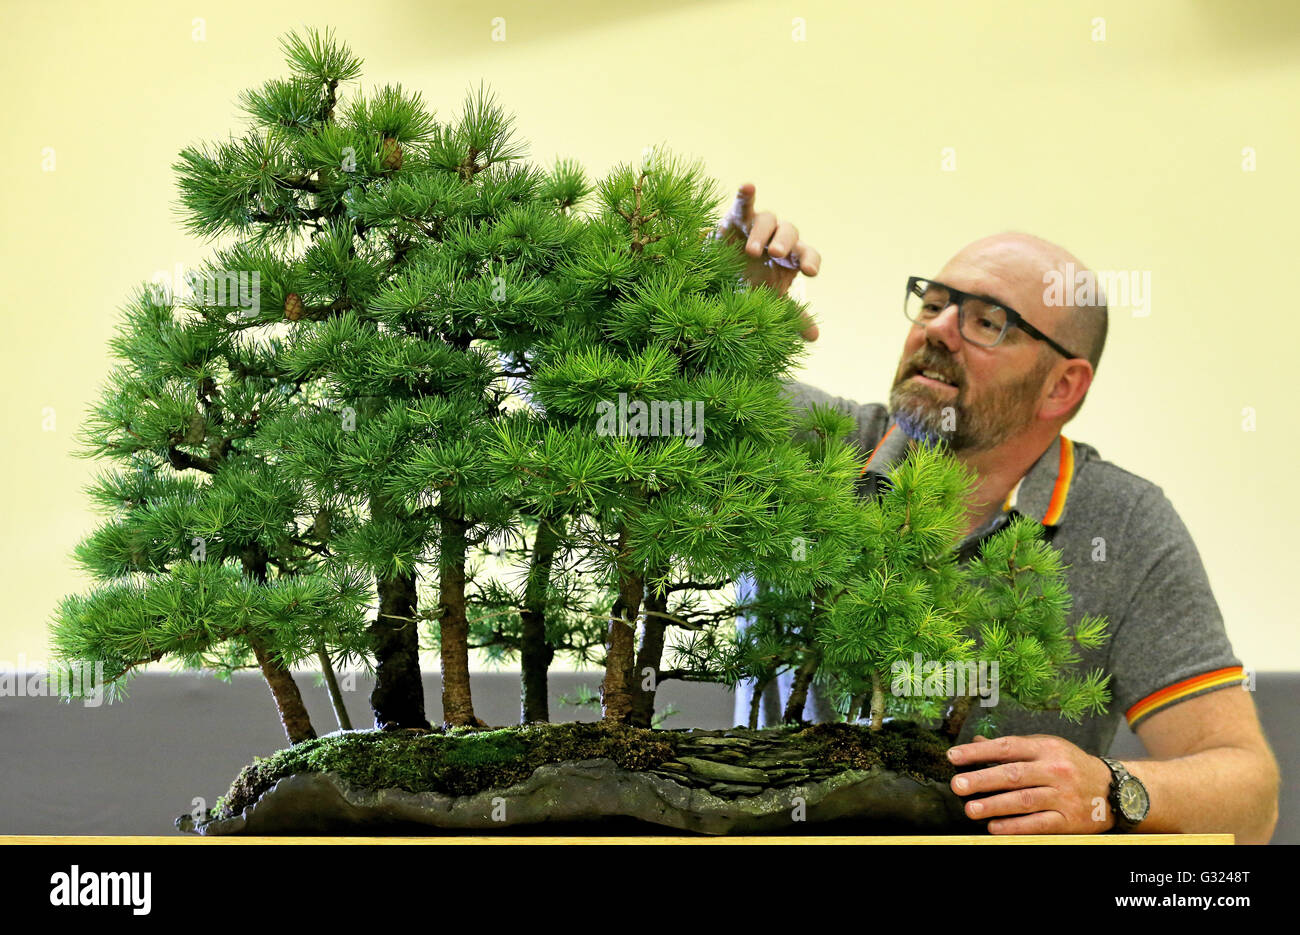 In case you're missing the forest for the trees, here are a few reminders why woodlands are wonderful. Page 2 Bonsai Trees Exhibition High Resolution Stock Photography And Images Alamy